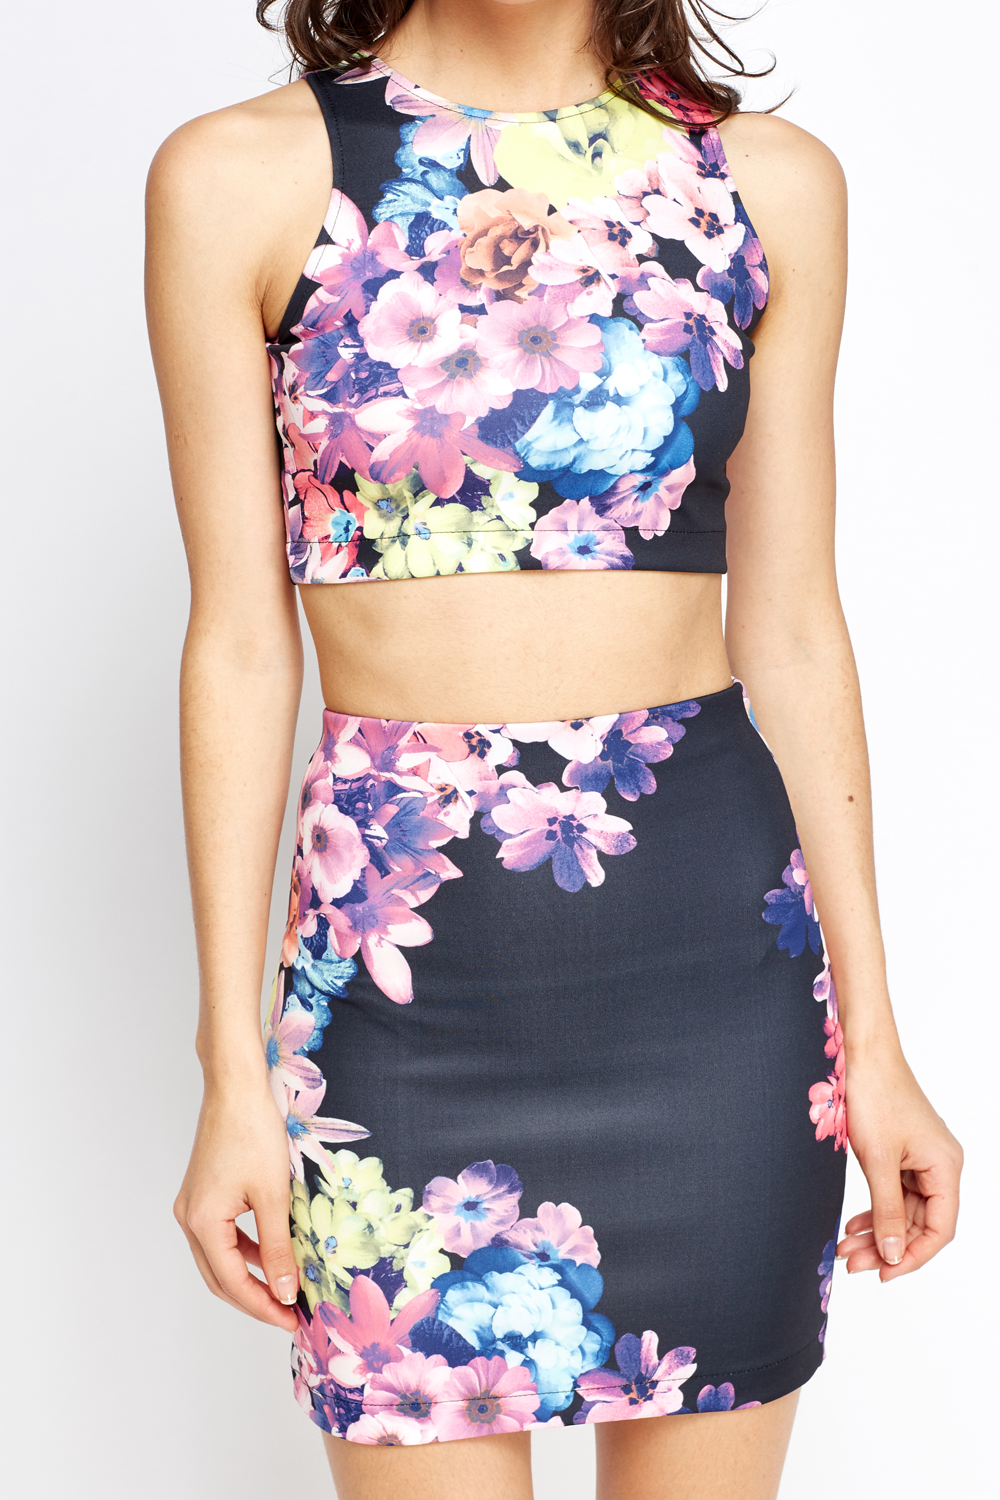 Floral Crop Top And Mini Skirt Set - Just £5